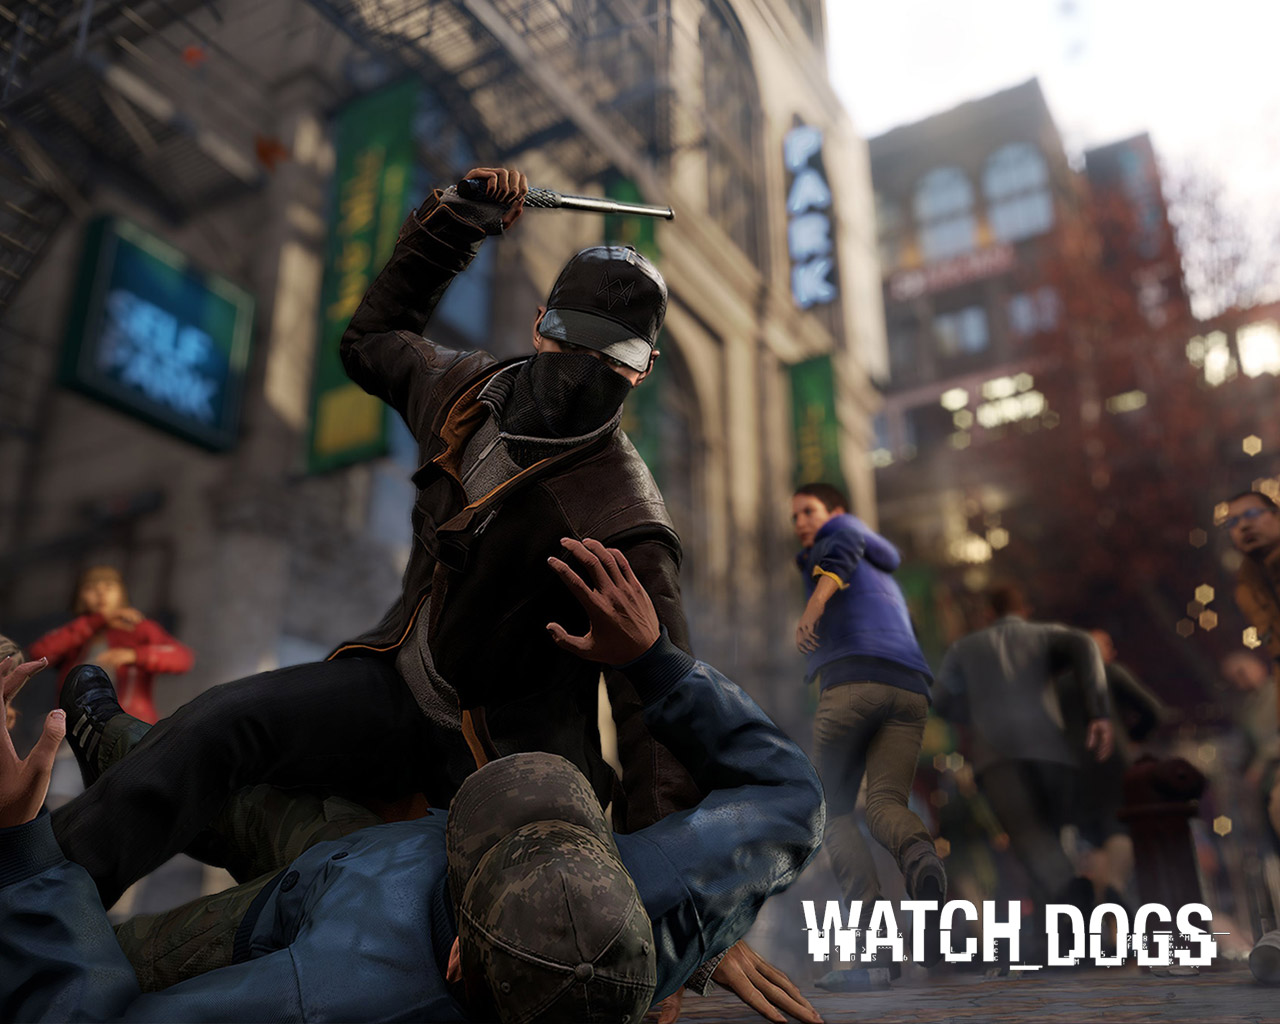 Watch Dogs Wallpapers, Nice Hdq Live Watch Dogs Pictures - Watch Dogs Baton , HD Wallpaper & Backgrounds